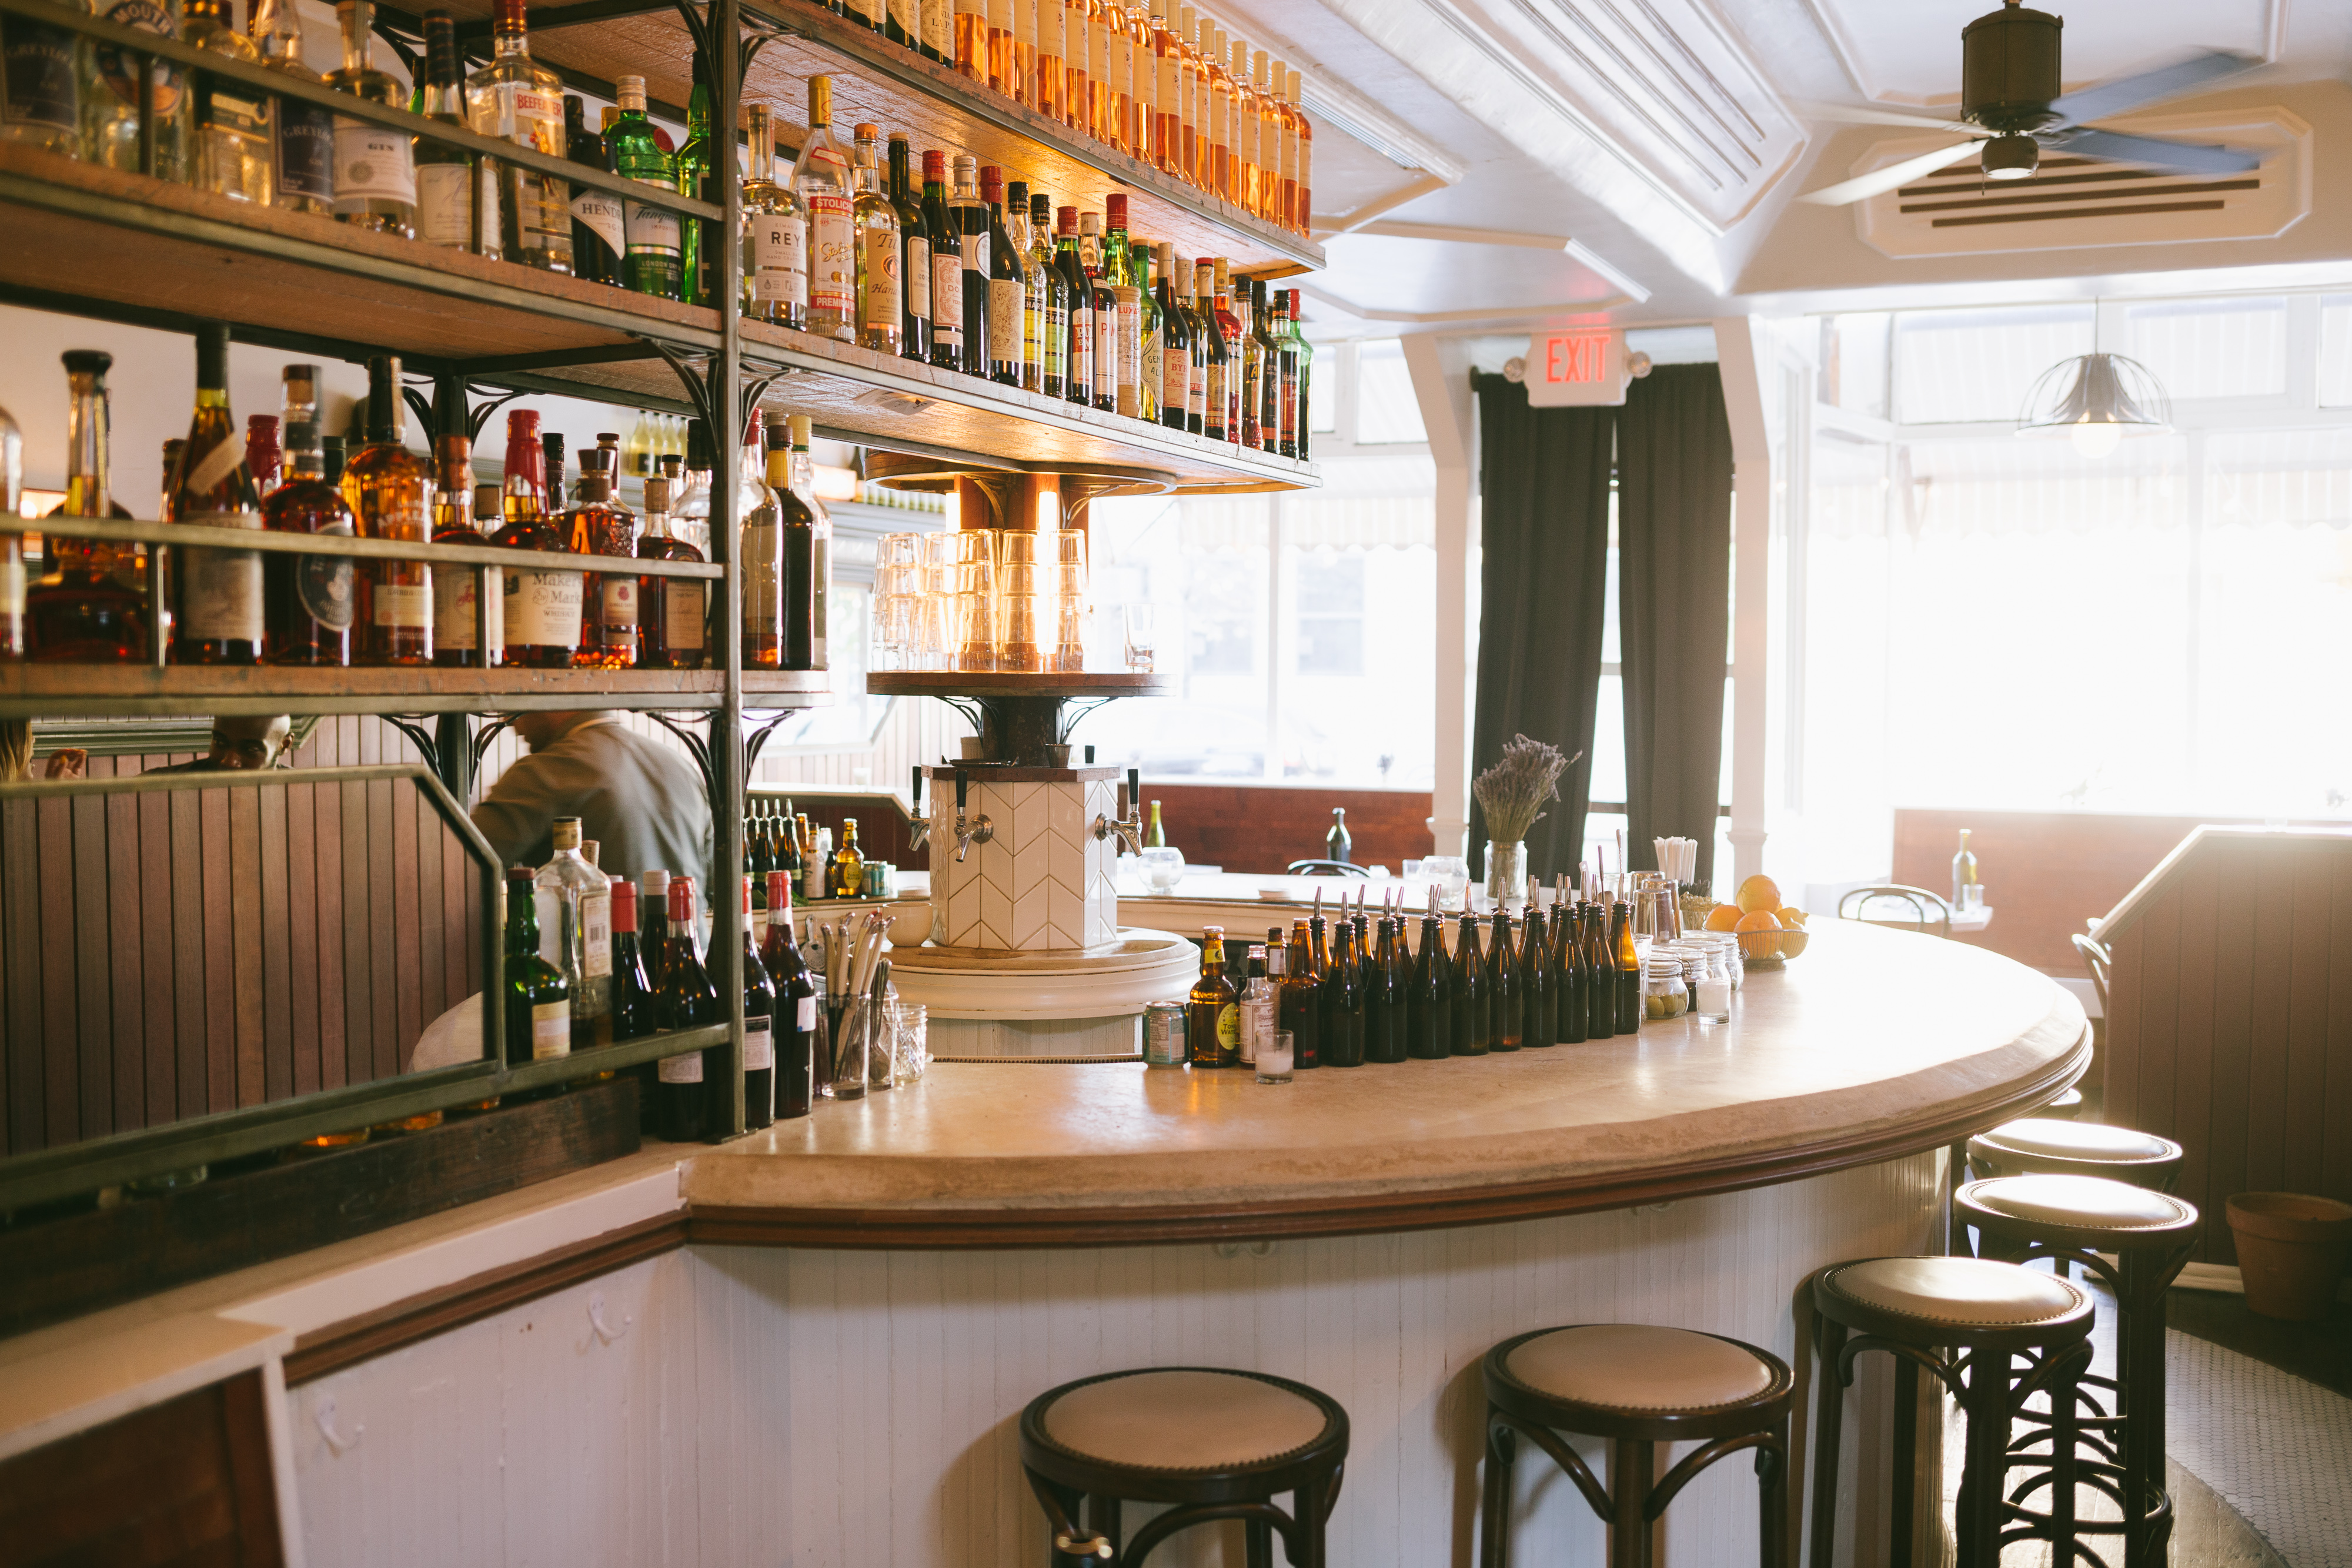 """7ba369a014b 24 Places To """"Grab A Drink"""" Where You Can Also Get Good Food - New York -  The Infatuation"""